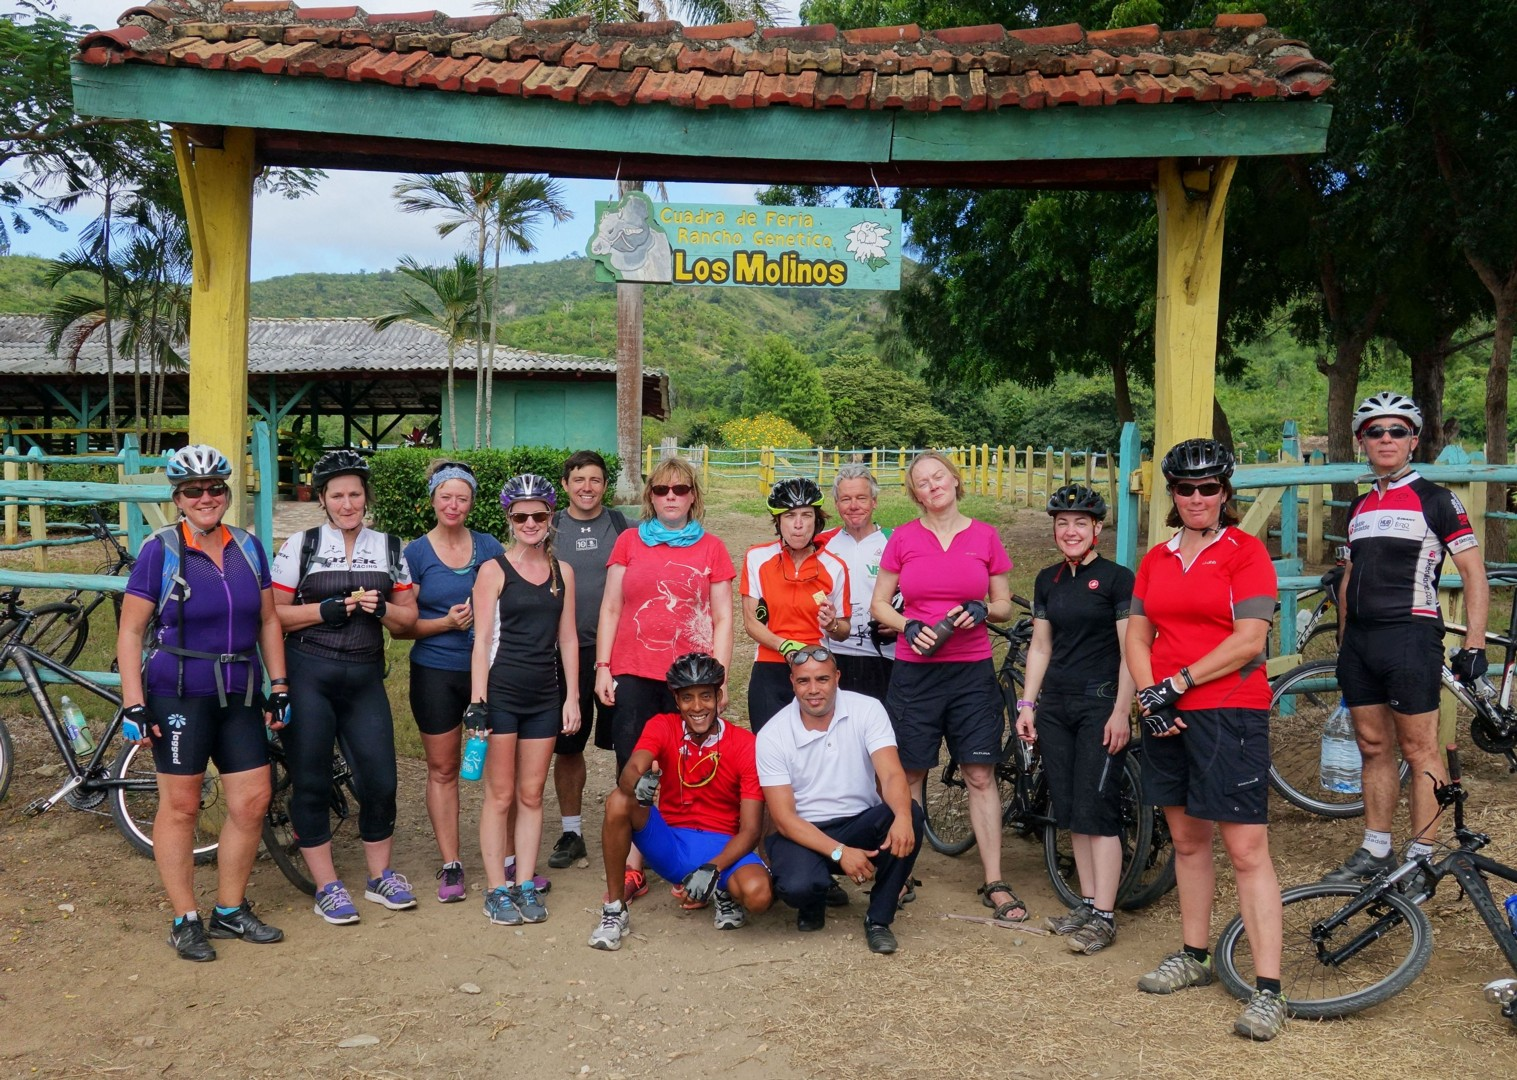 _Customer.119526.32863.jpg - Cuba - Cuban Revolutions - Cycling Adventures